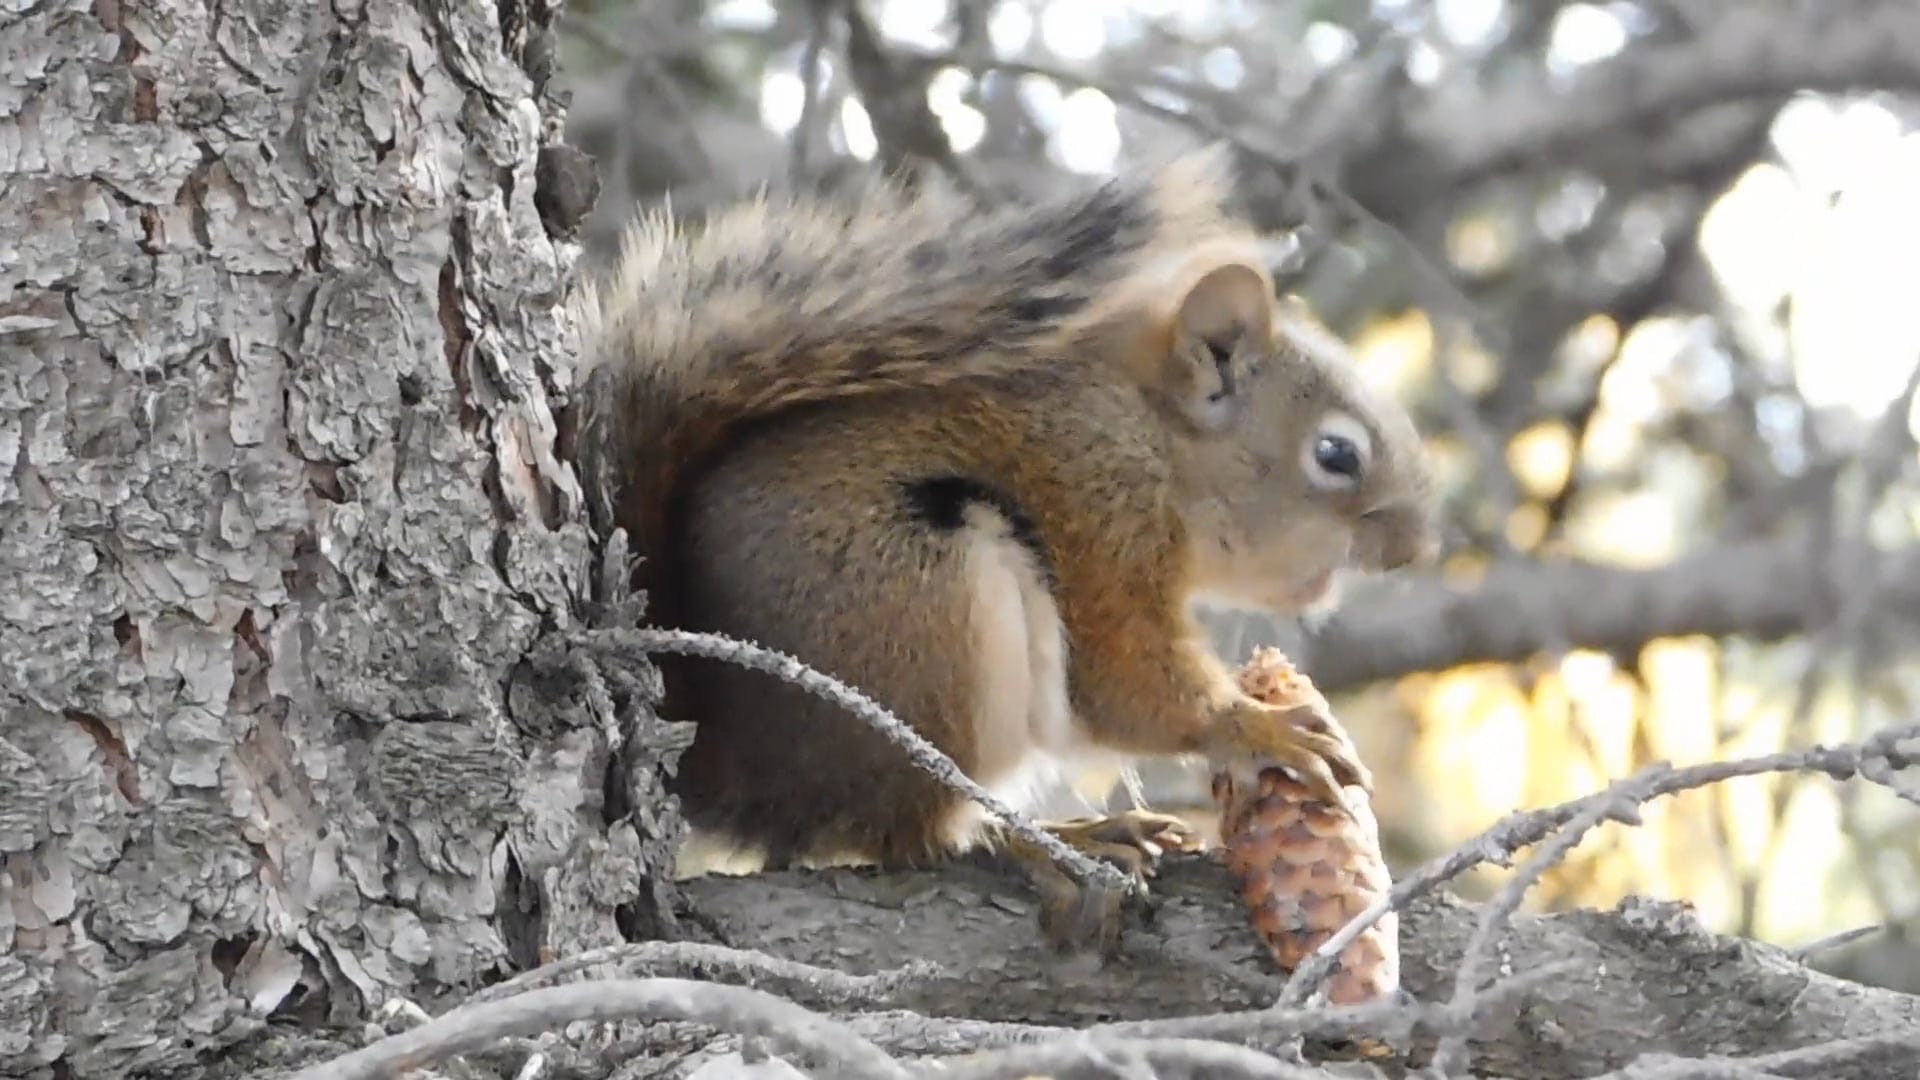 Squirrel Busy Eating Its Food